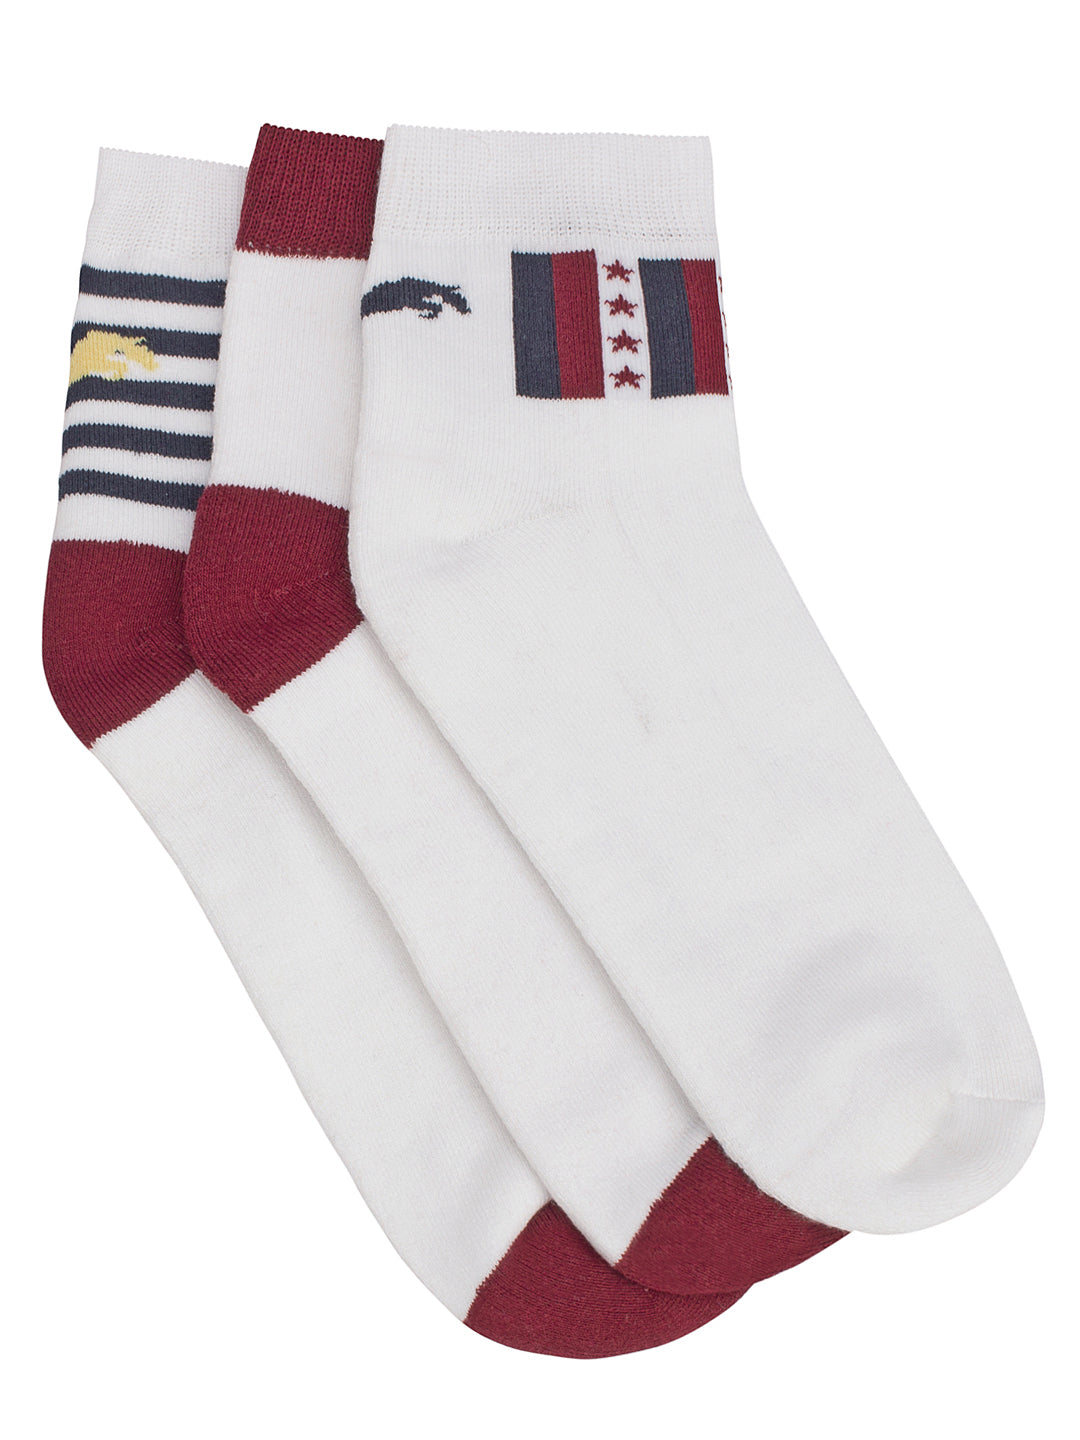 JUMP USA Terry Cotton 3 Pack Socks Mens - JUMP USA - Breeches.com